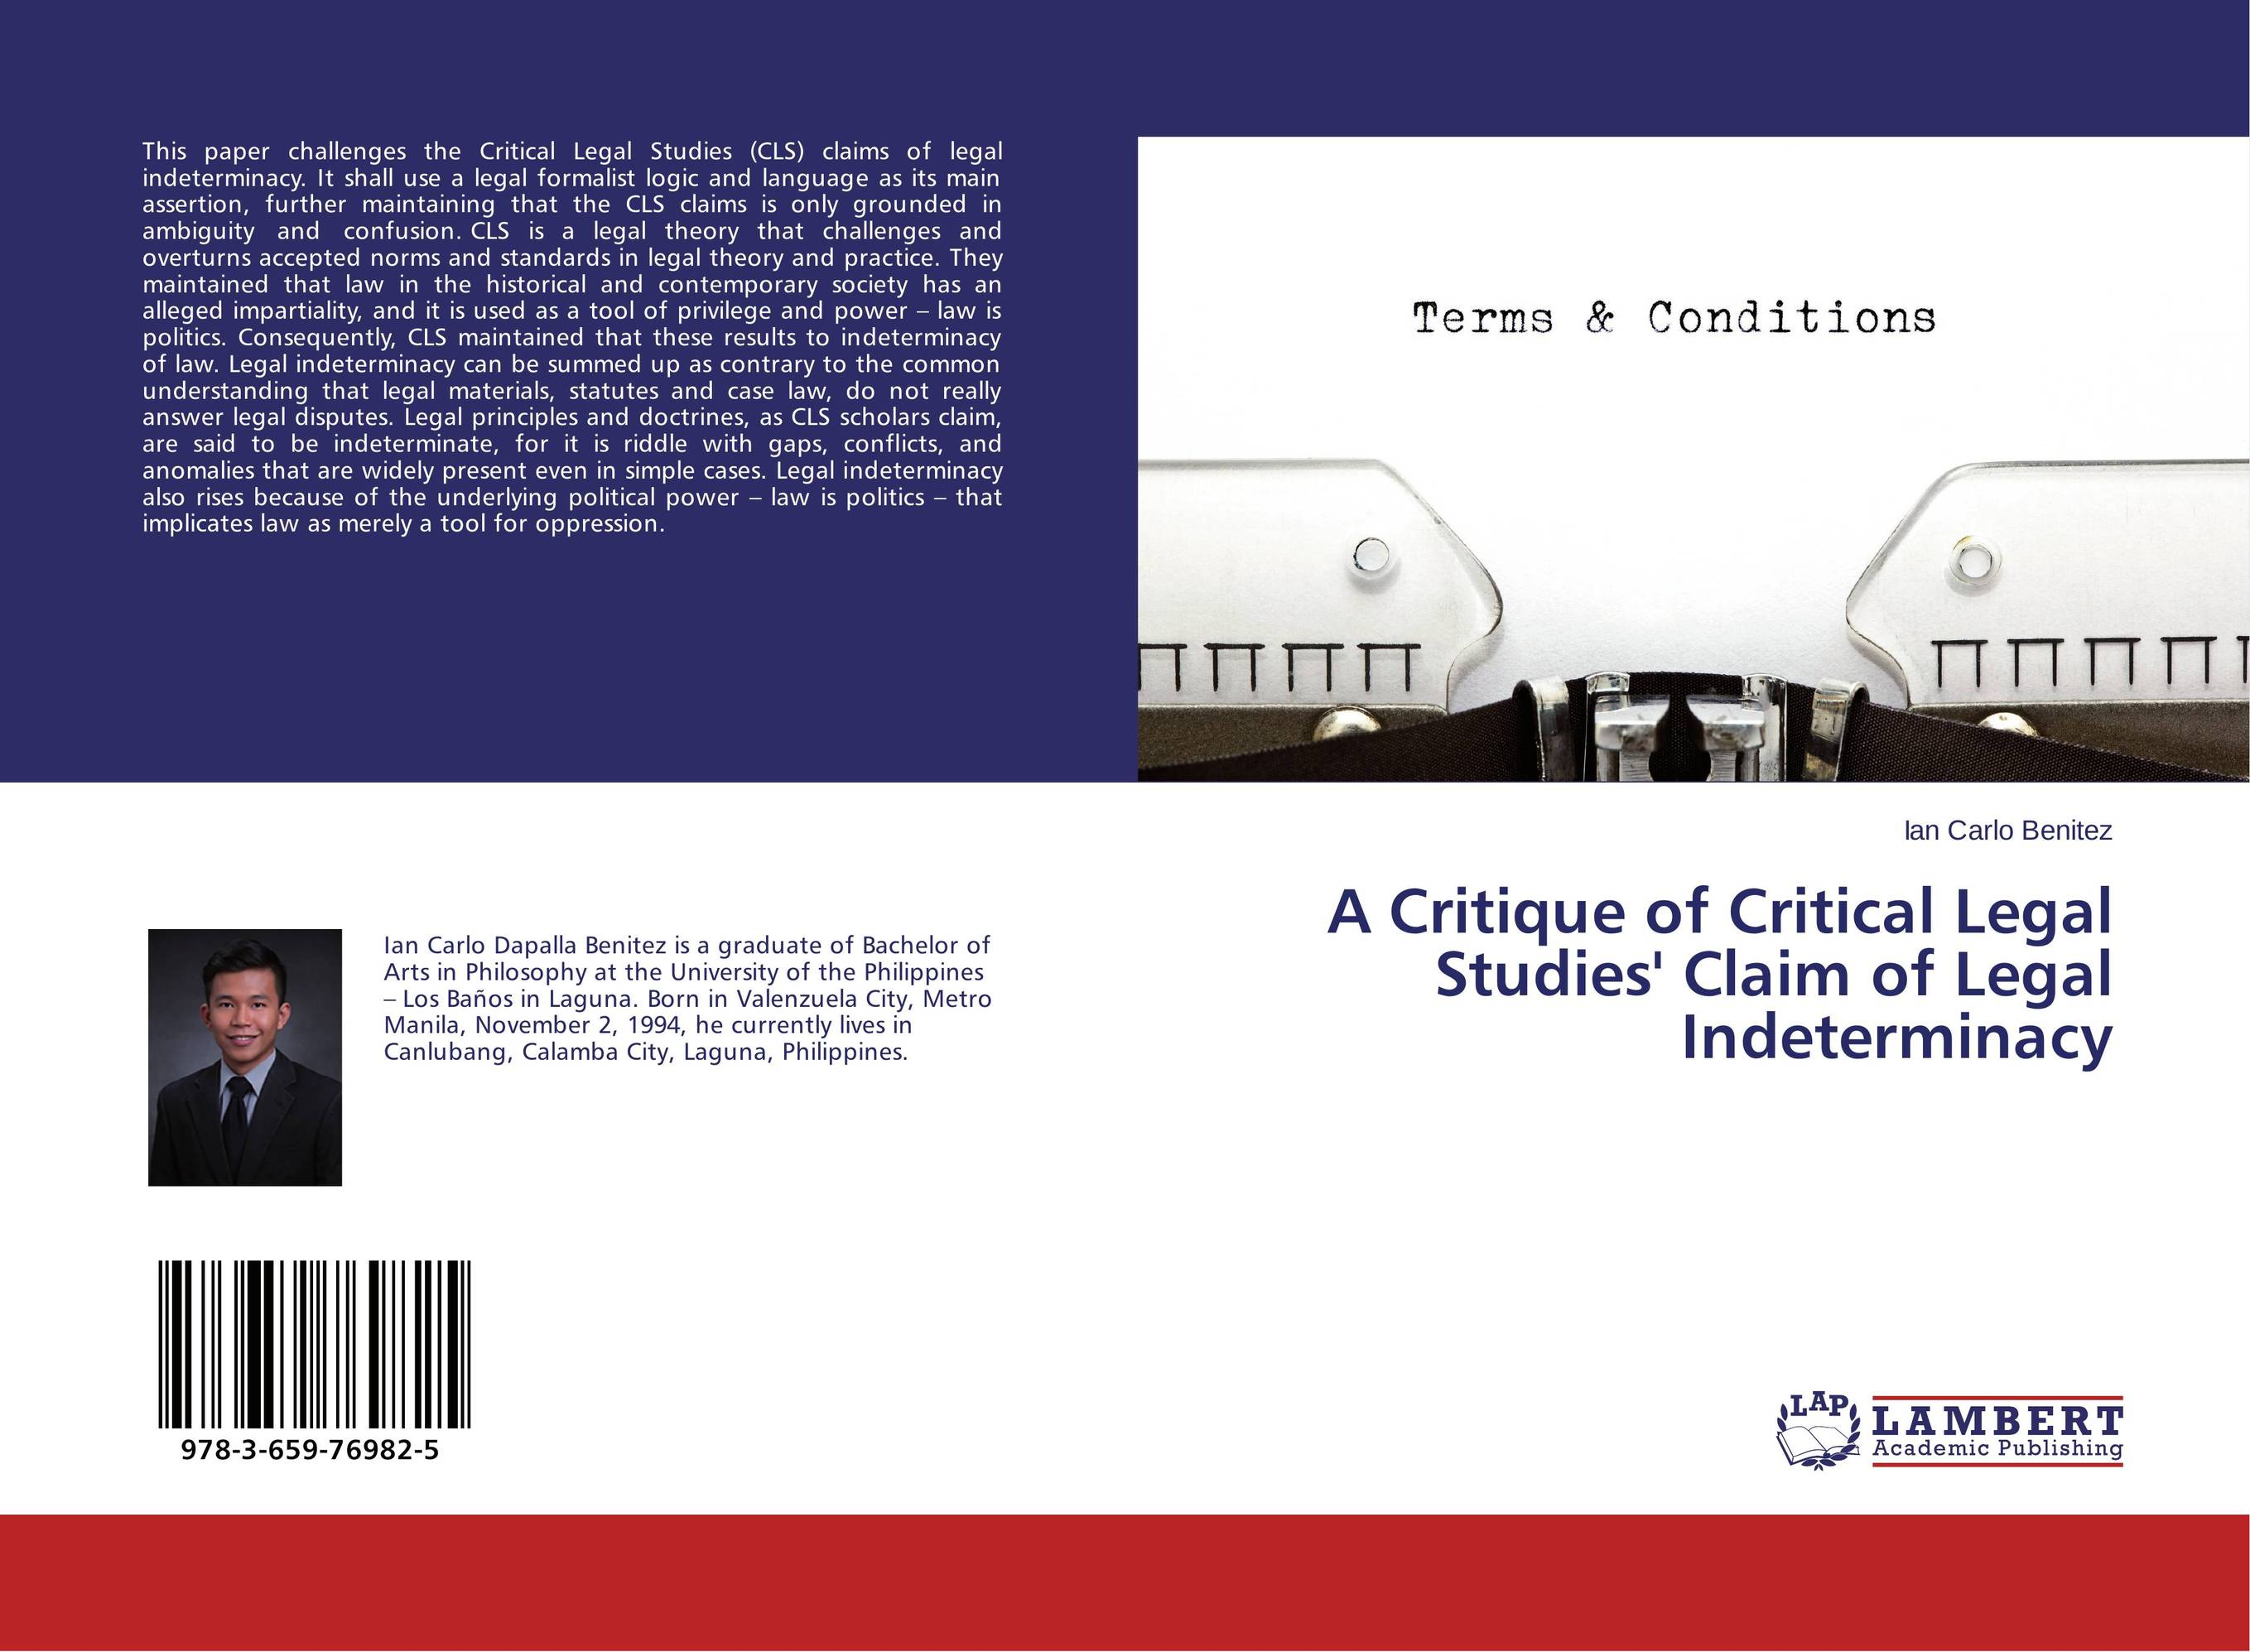 A Critique of Critical Legal Studies' Claim of Legal Indeterminacy residual indeterminacy or optionality at core syntax